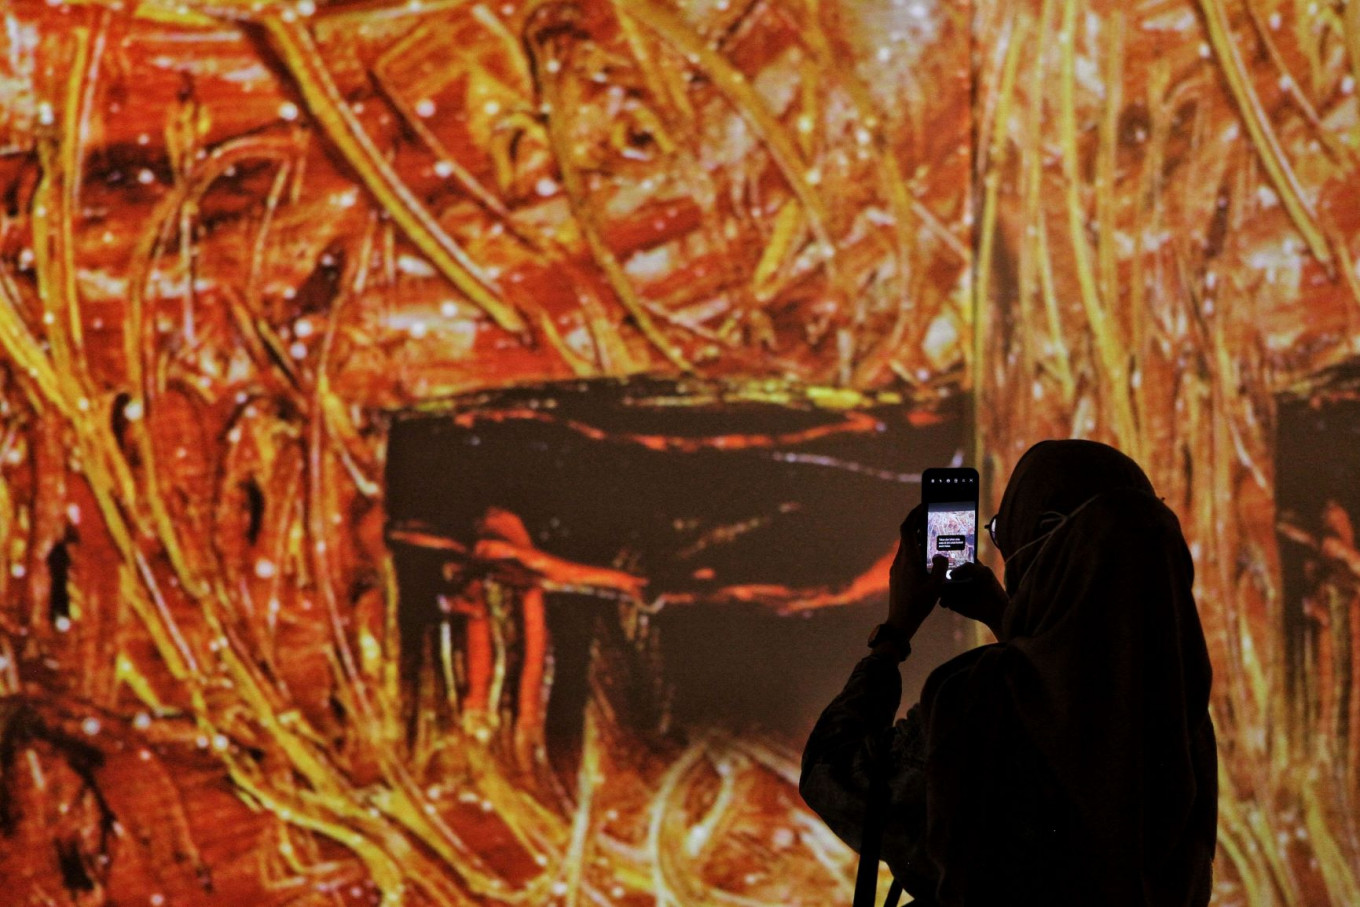 National gallery brings Affandi's paintings to life in immersive spectacle